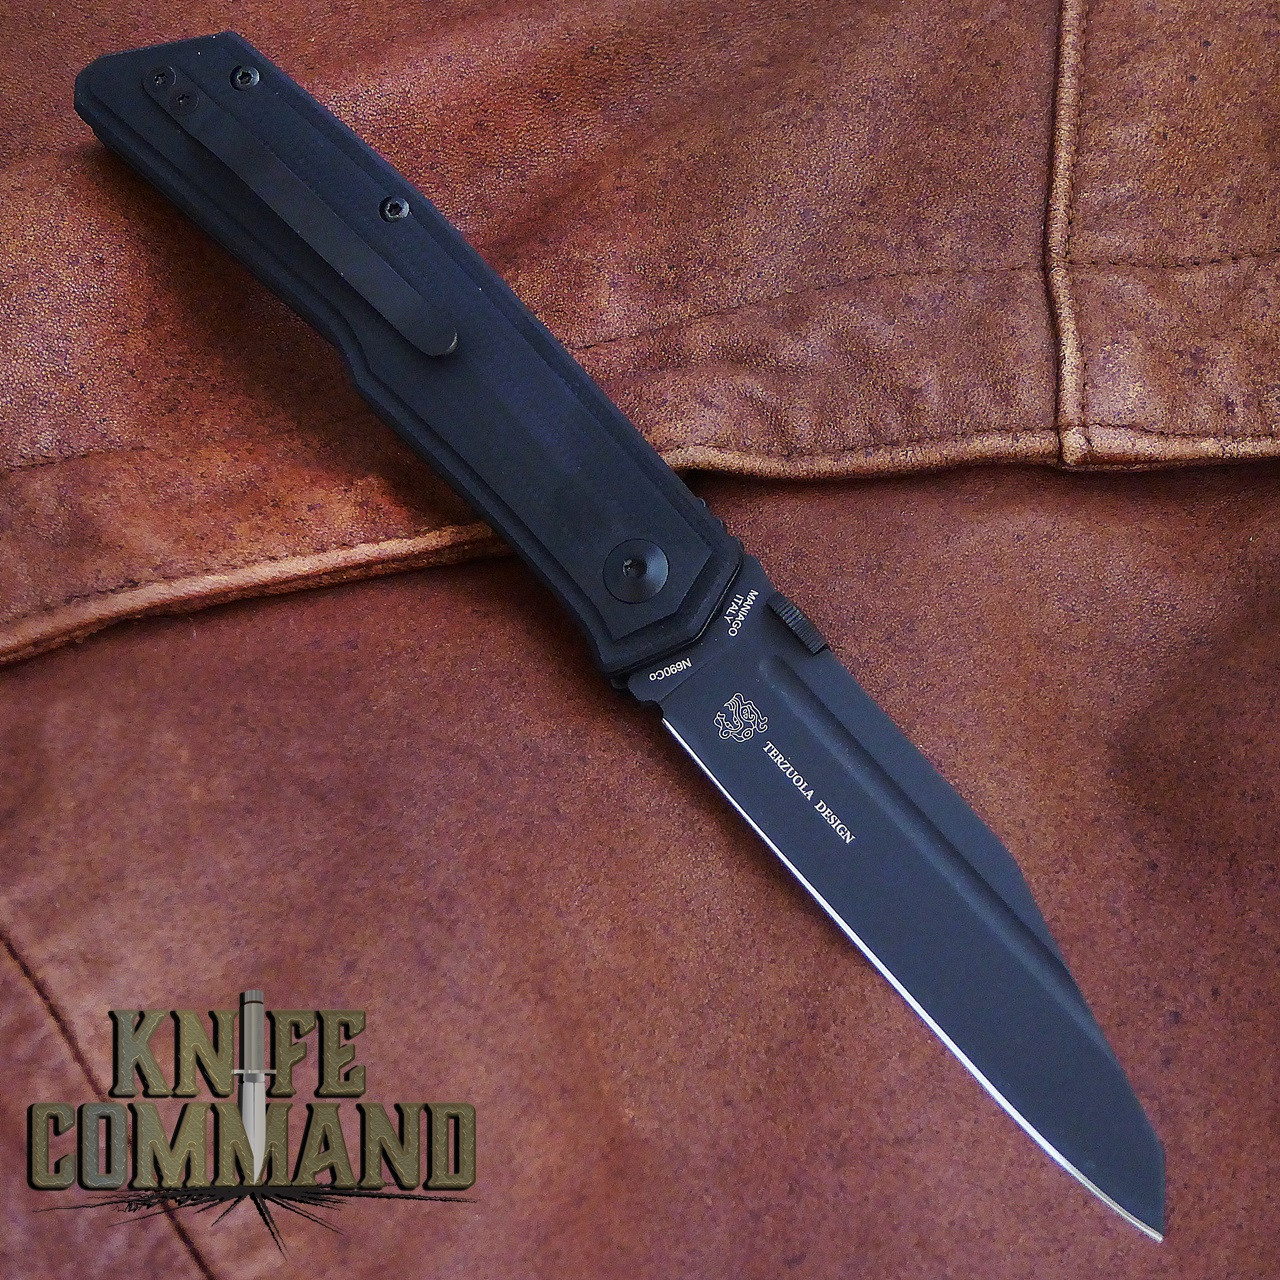 Fox Knives Bob Terzuola Tactical Black G-10 Liner Lock Pocket Knife FX-515.  G-10 with a pocket clip.